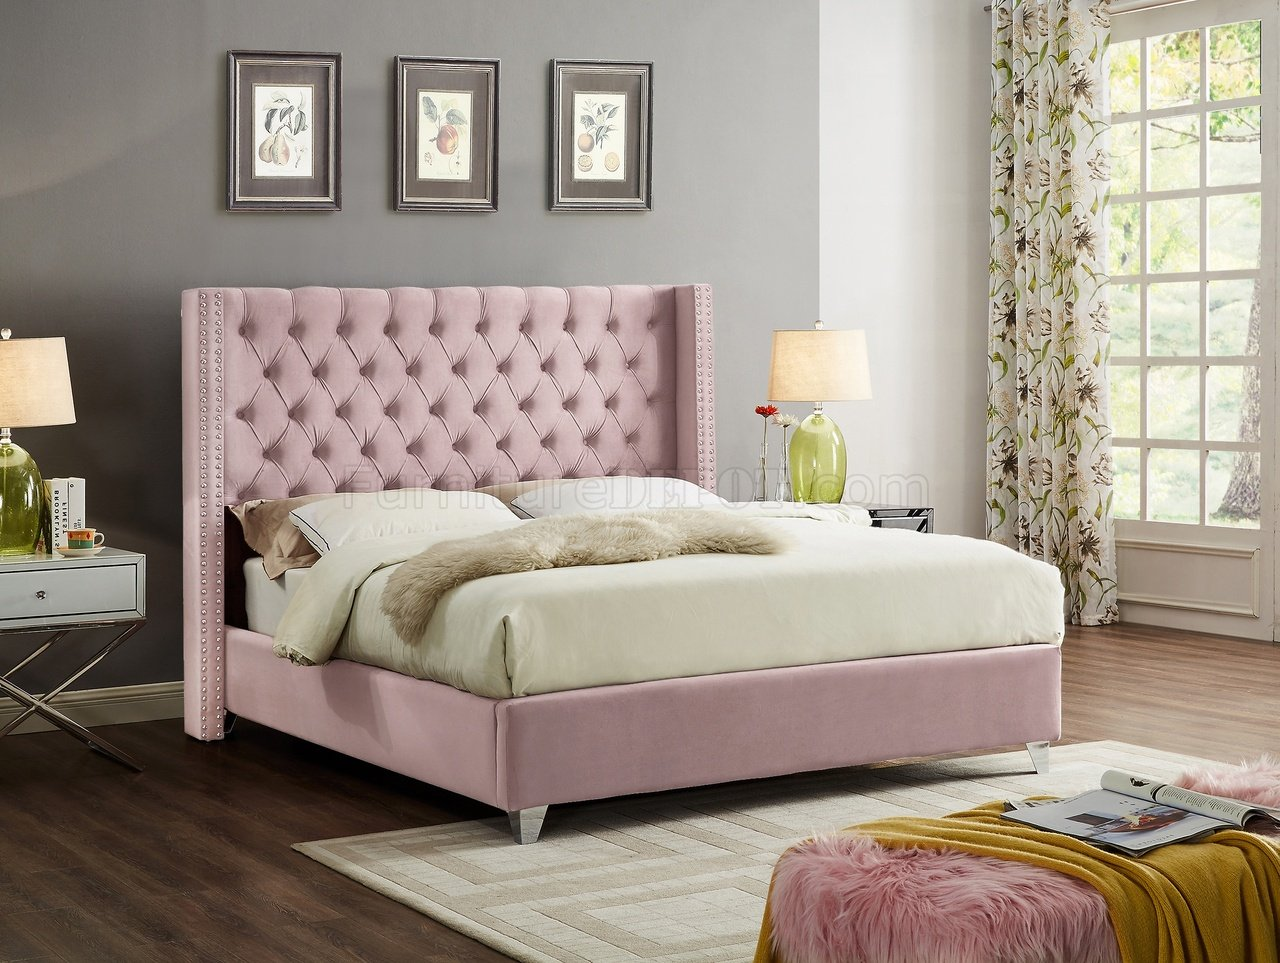 Aiden Bed in Pink Velvet Fabric by Meridian wOptions